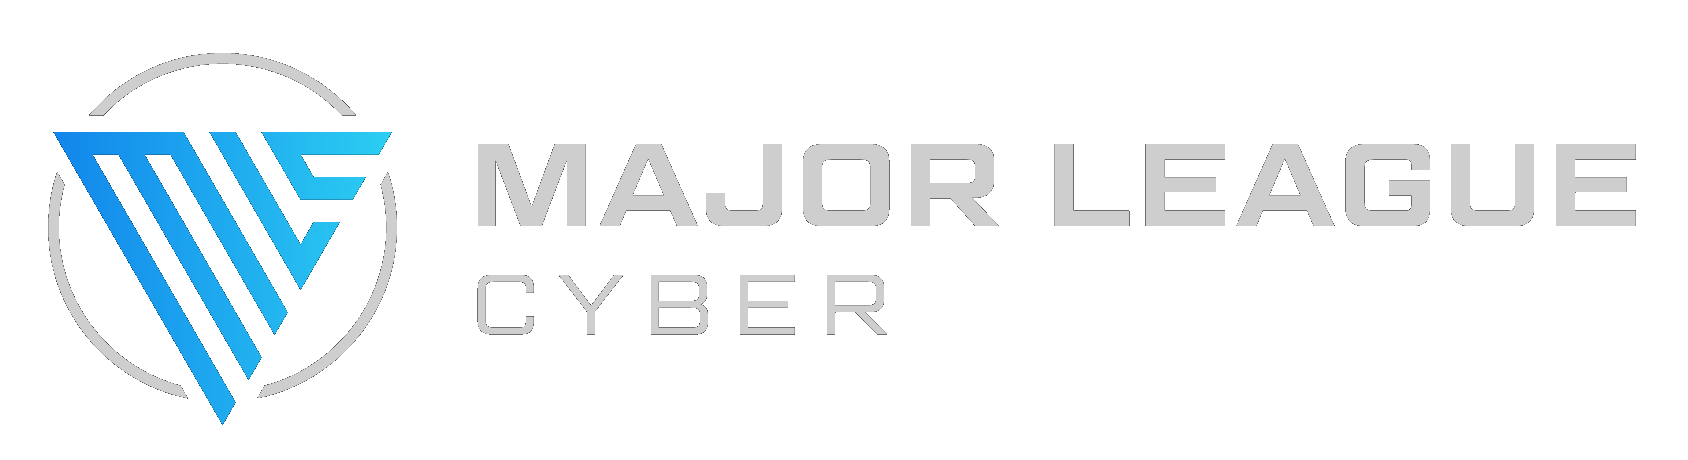 Major League Cyber